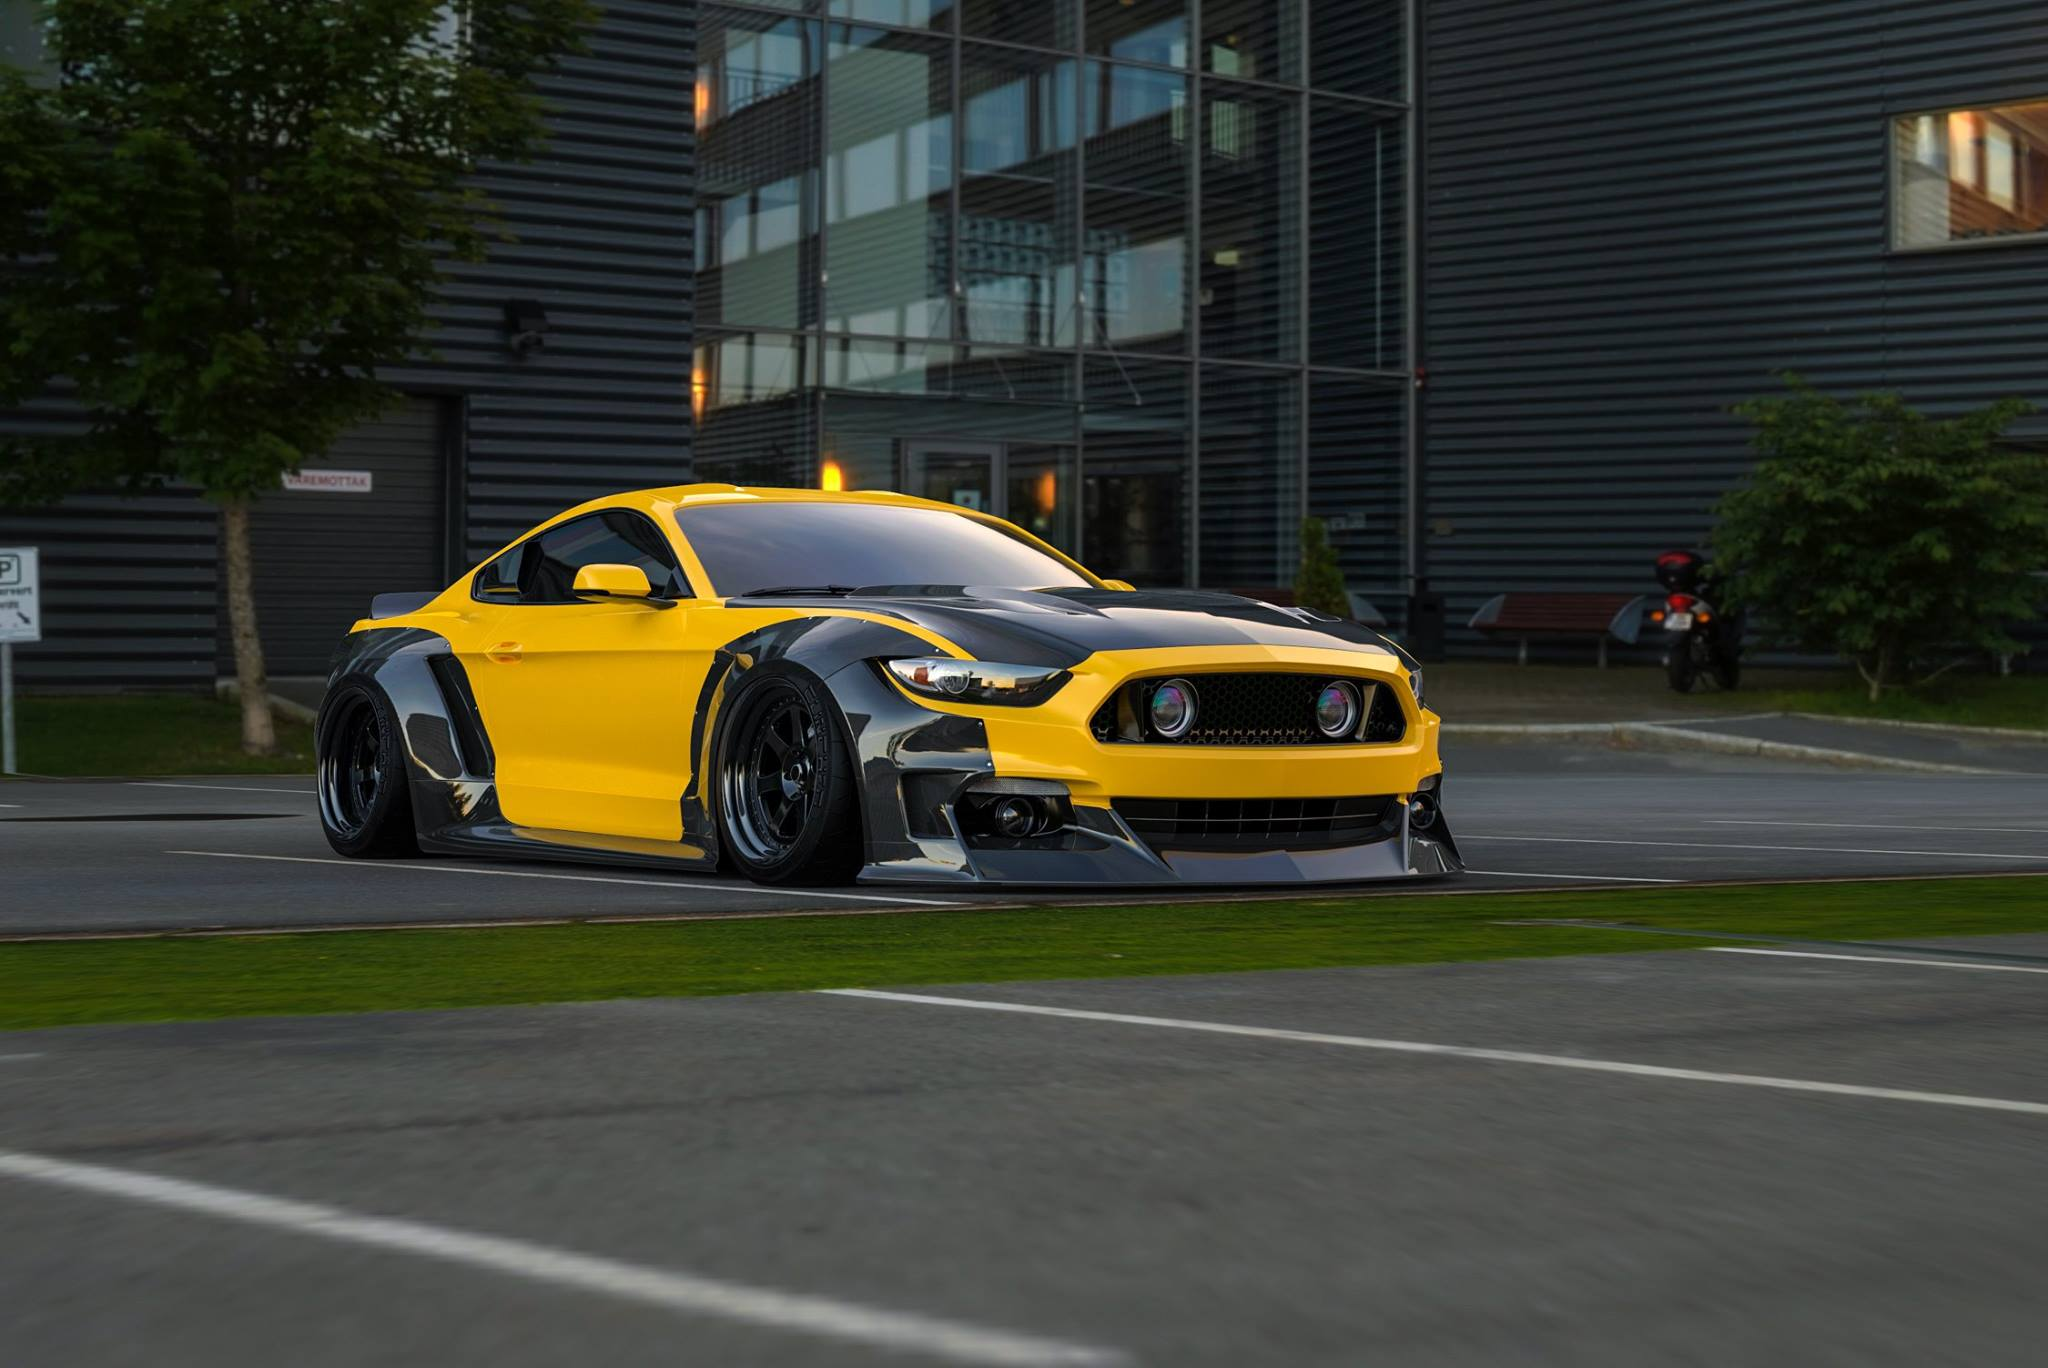 Ford Mustang widebody by Clinched (4)